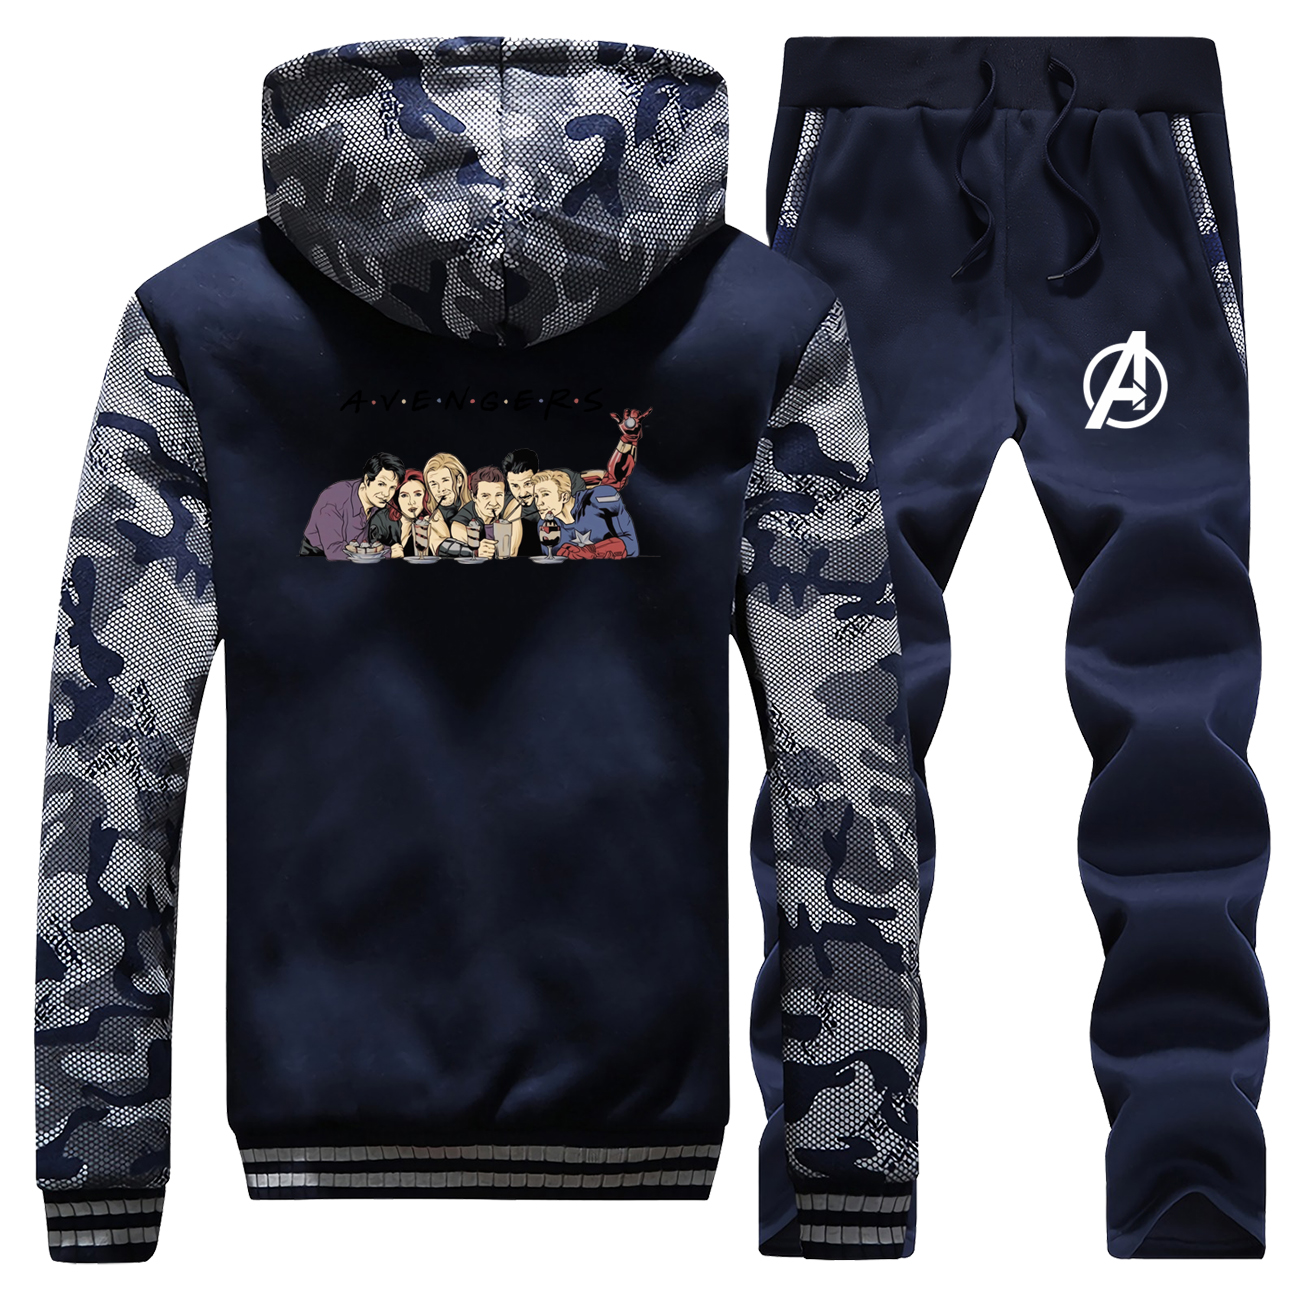 Marvel Mens Tracksuit Hoodie Set Two Pieces Winter Thick Sporting Track Suit Male Sweatshirts 2Pcs Jacket+Pants Sportswear Set